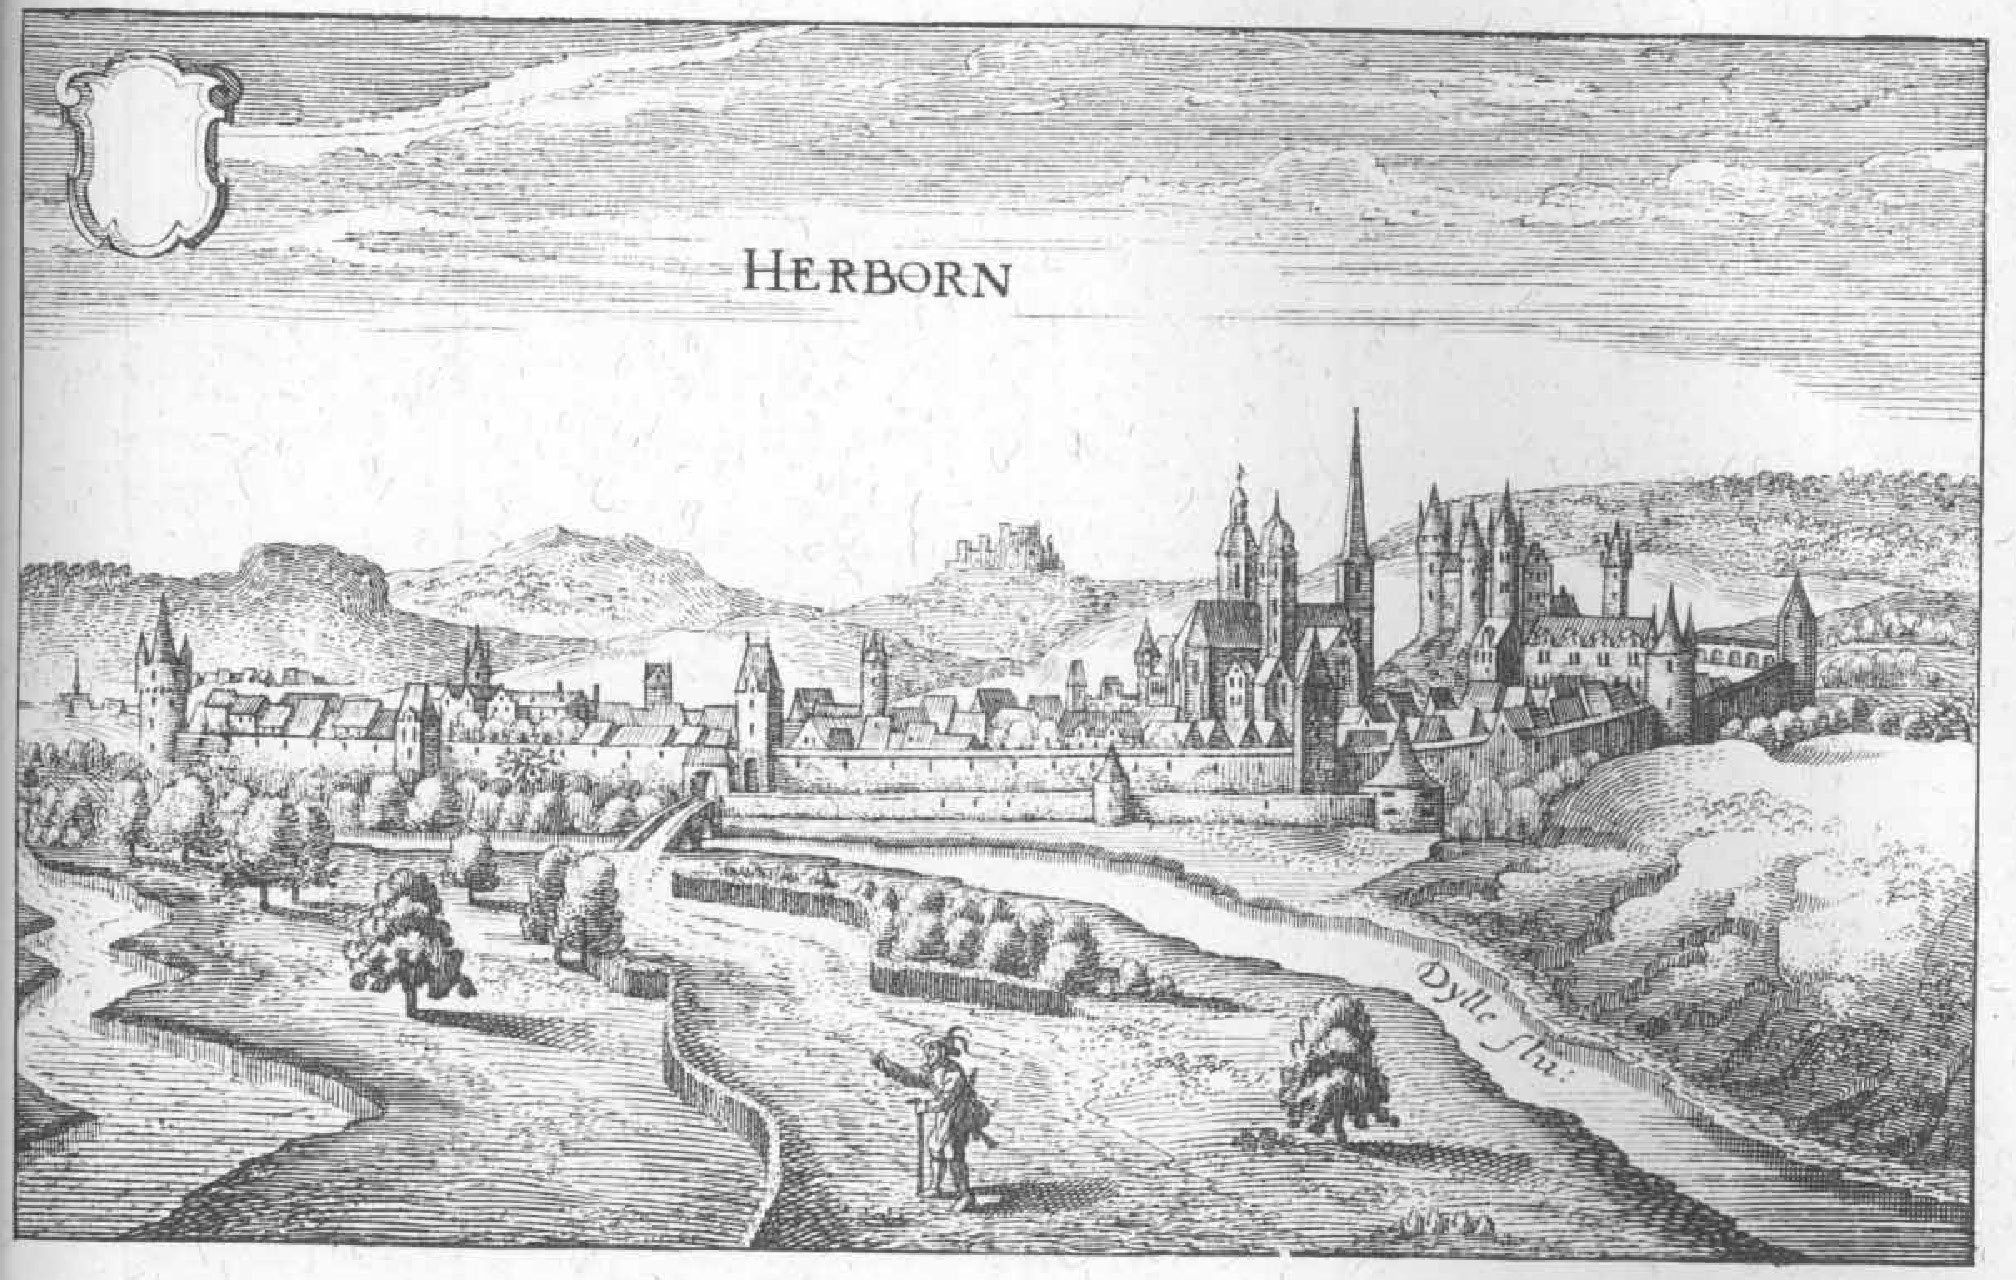 summary herborn Analyze page for herbornde - herborn including statistics, performance, general information and density value.